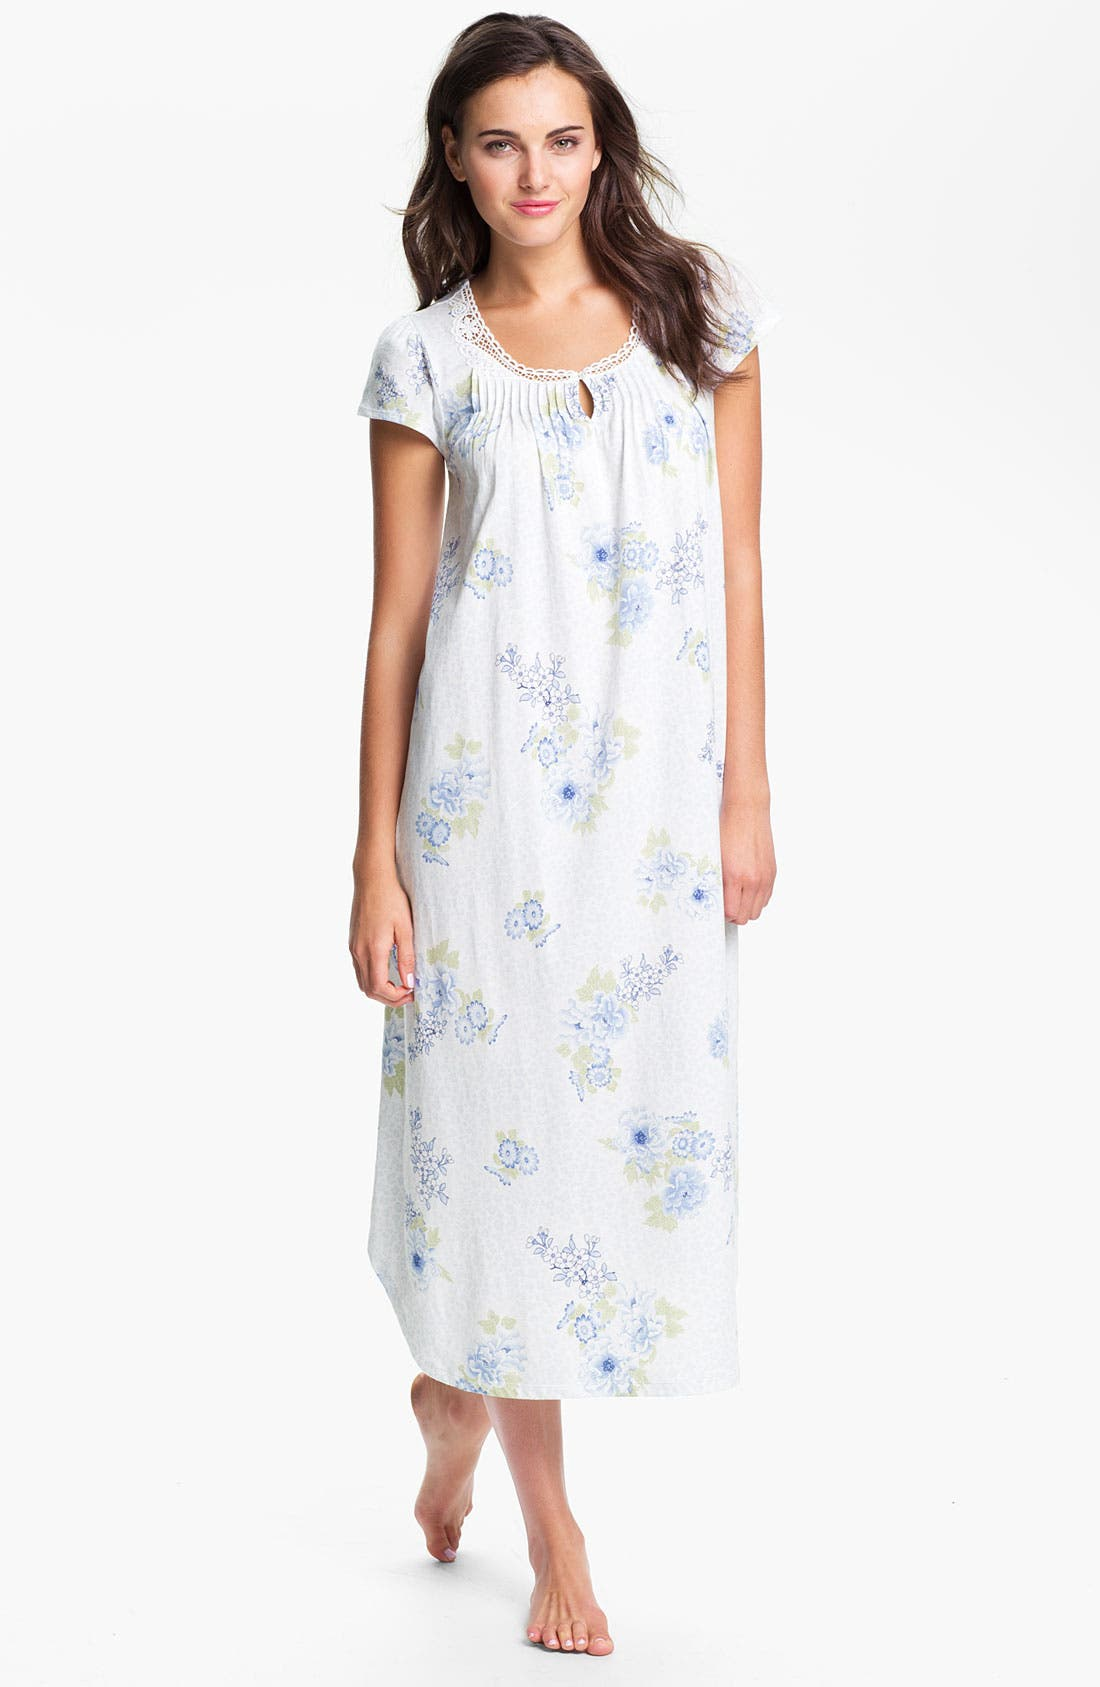 Main Image - Carole Hochman Designs Cotton Jersey Nightgown